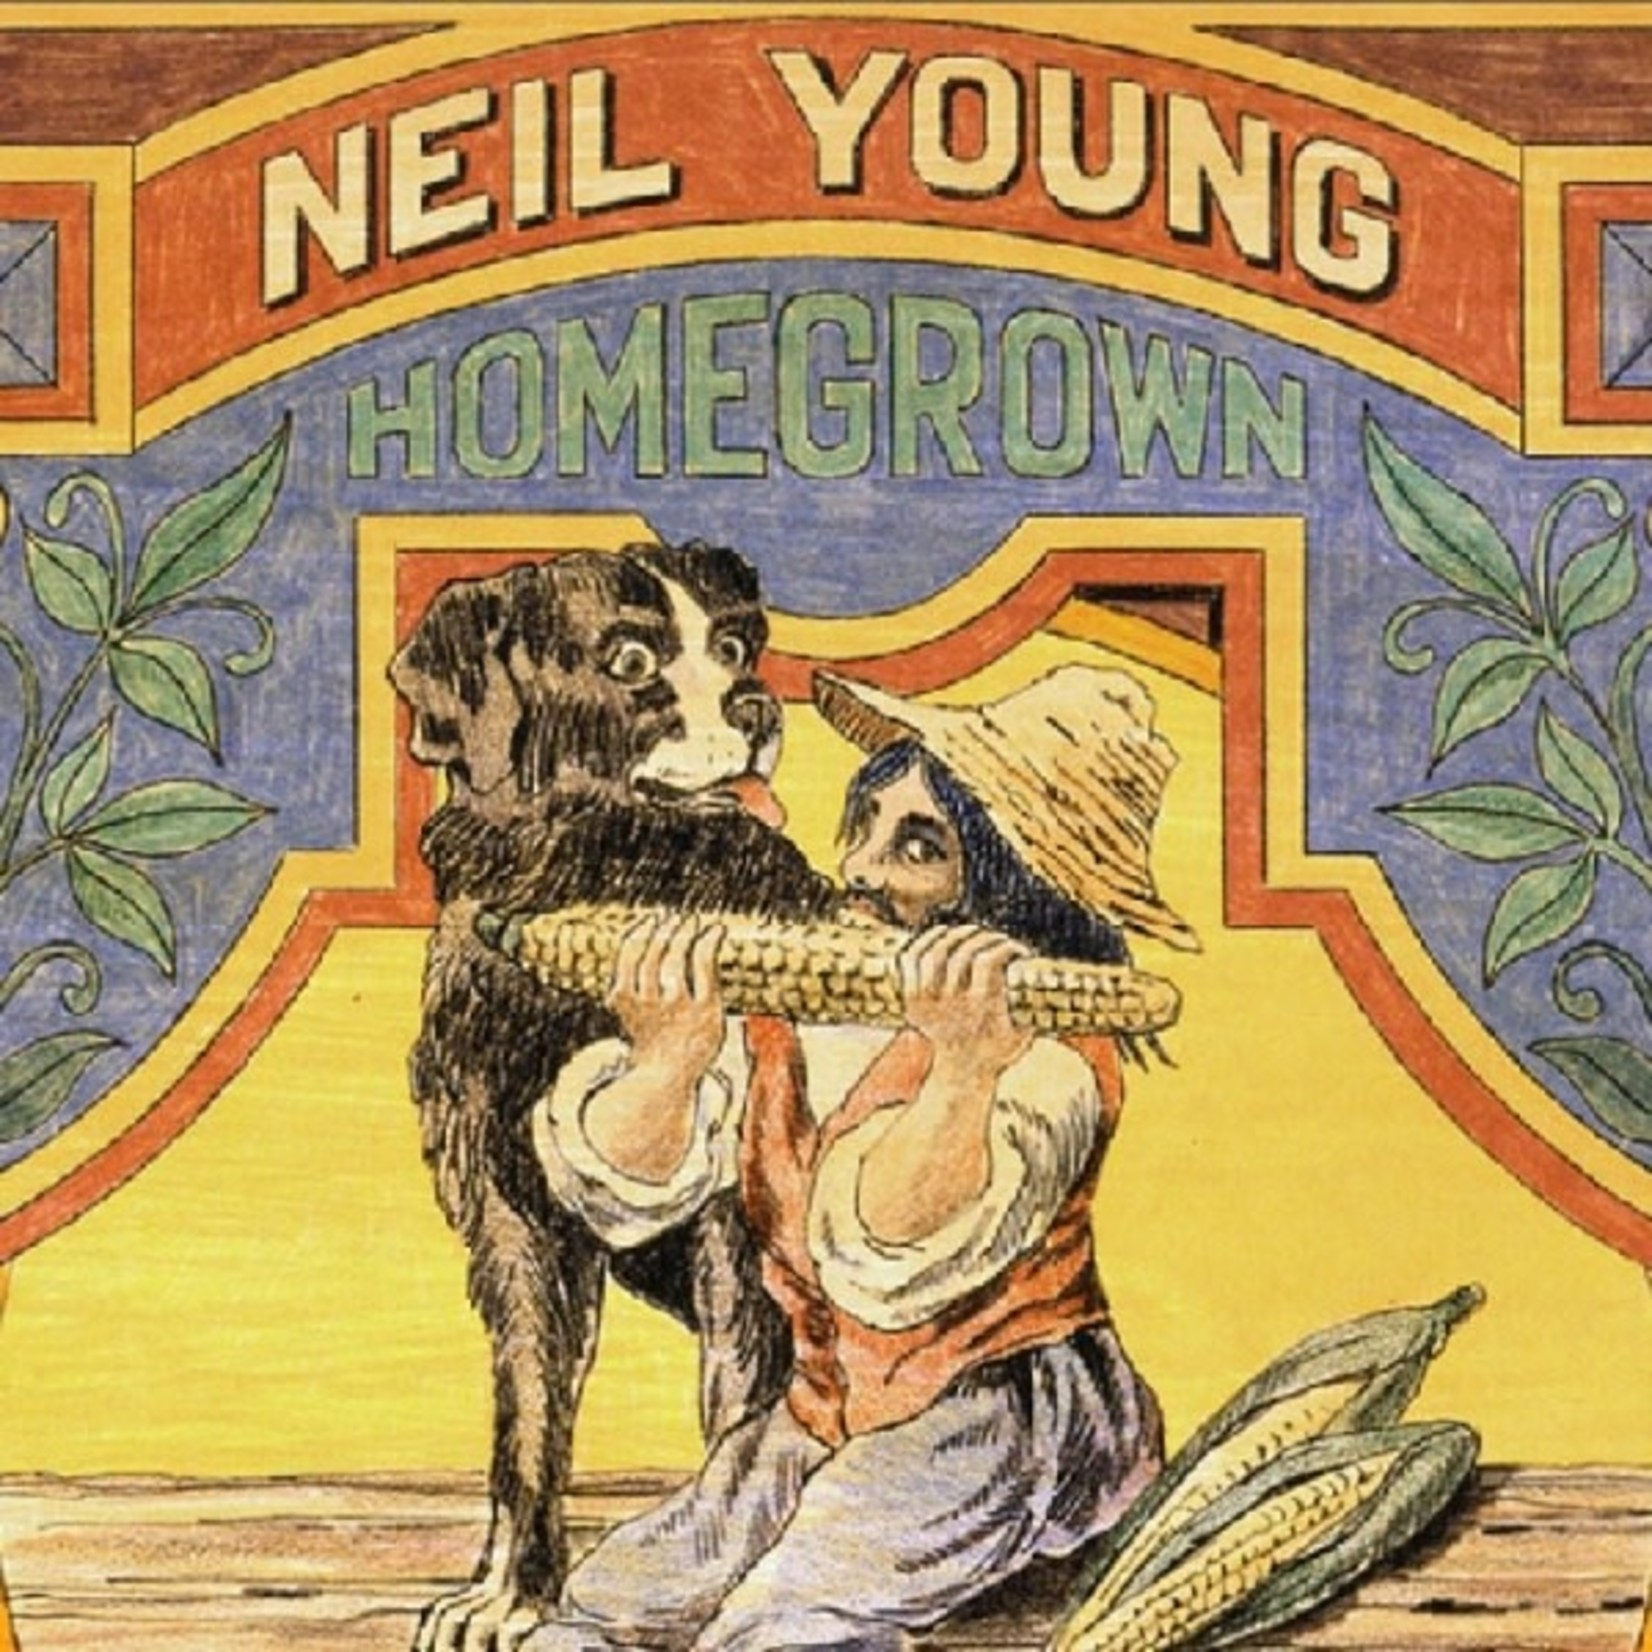 YOUNG_ NEIL - Homegrown  (CD)